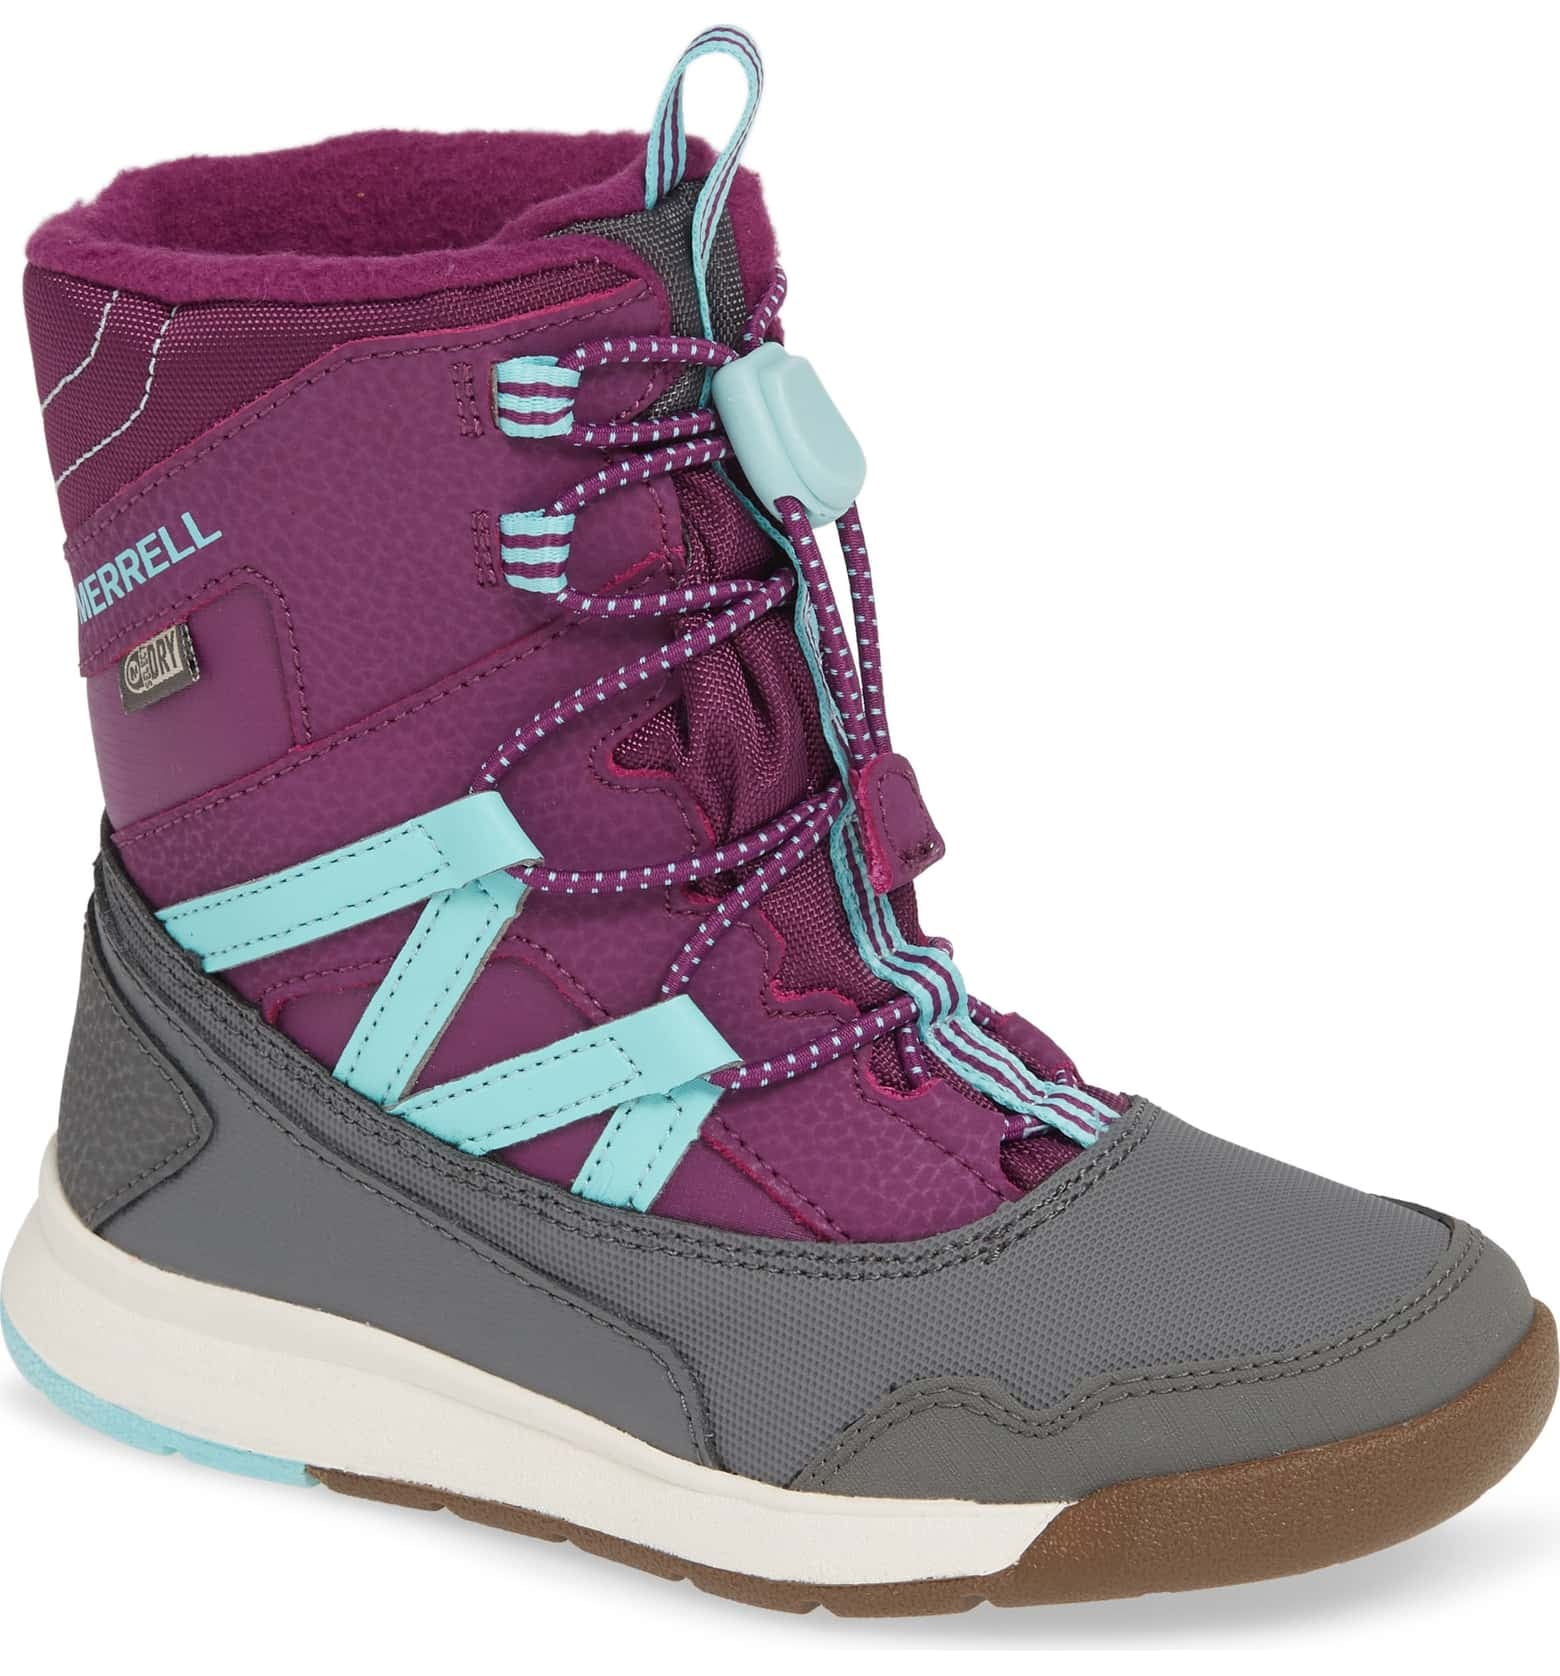 b9c0dd1484c0d Merrell Snow Crush Snow Boot | Let It Snow! 26 of the Coziest ...